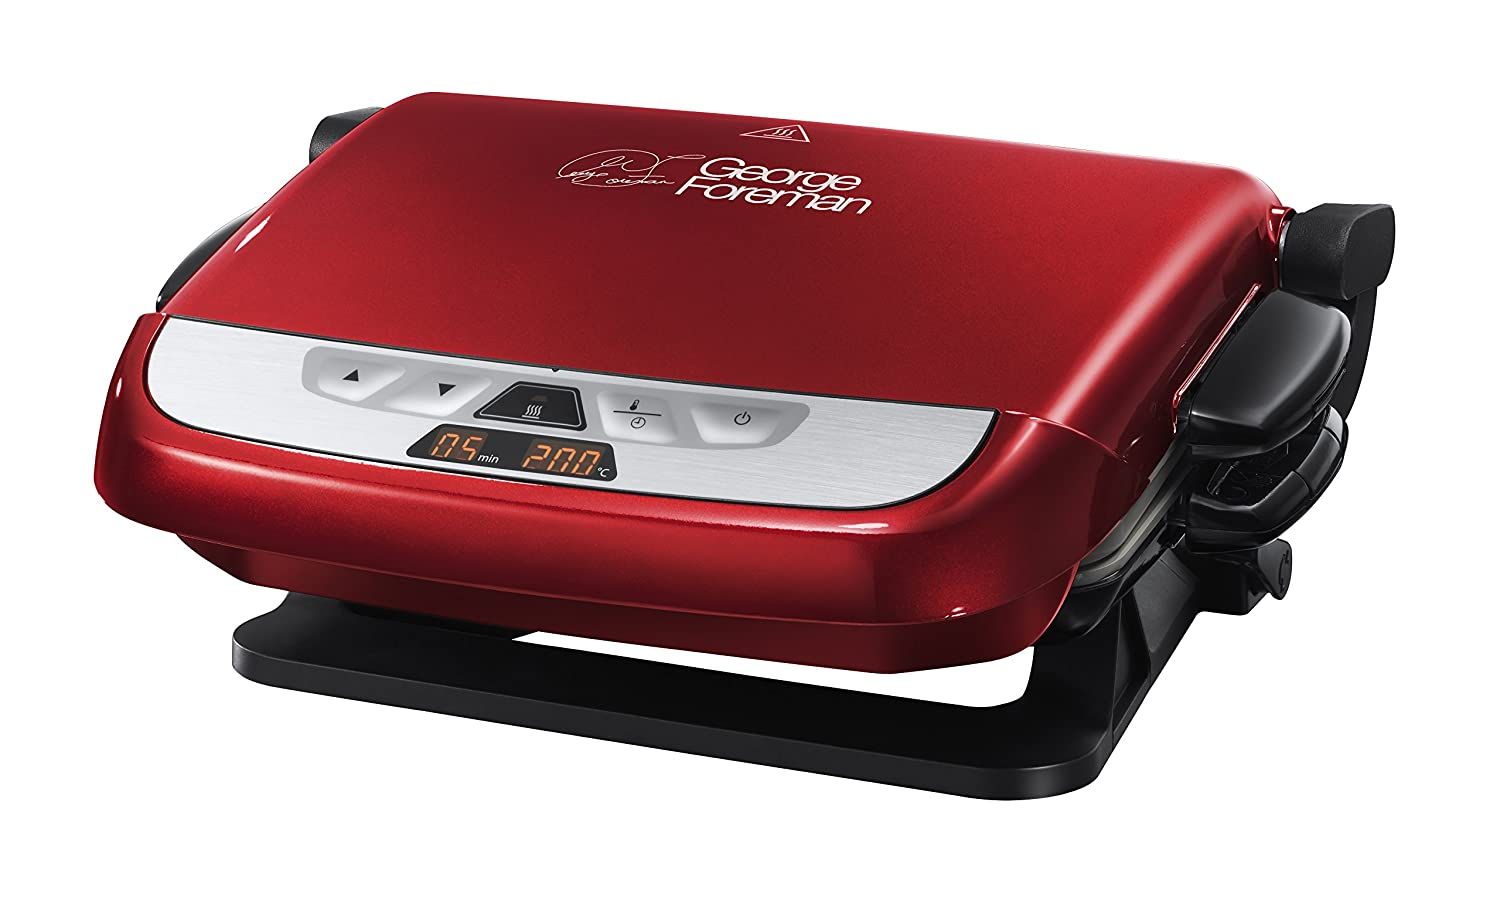 George Foreman Evolve Family 5-Portion Grill with Omelette Plates - Red:  Amazon.co.uk: Kitchen & Home